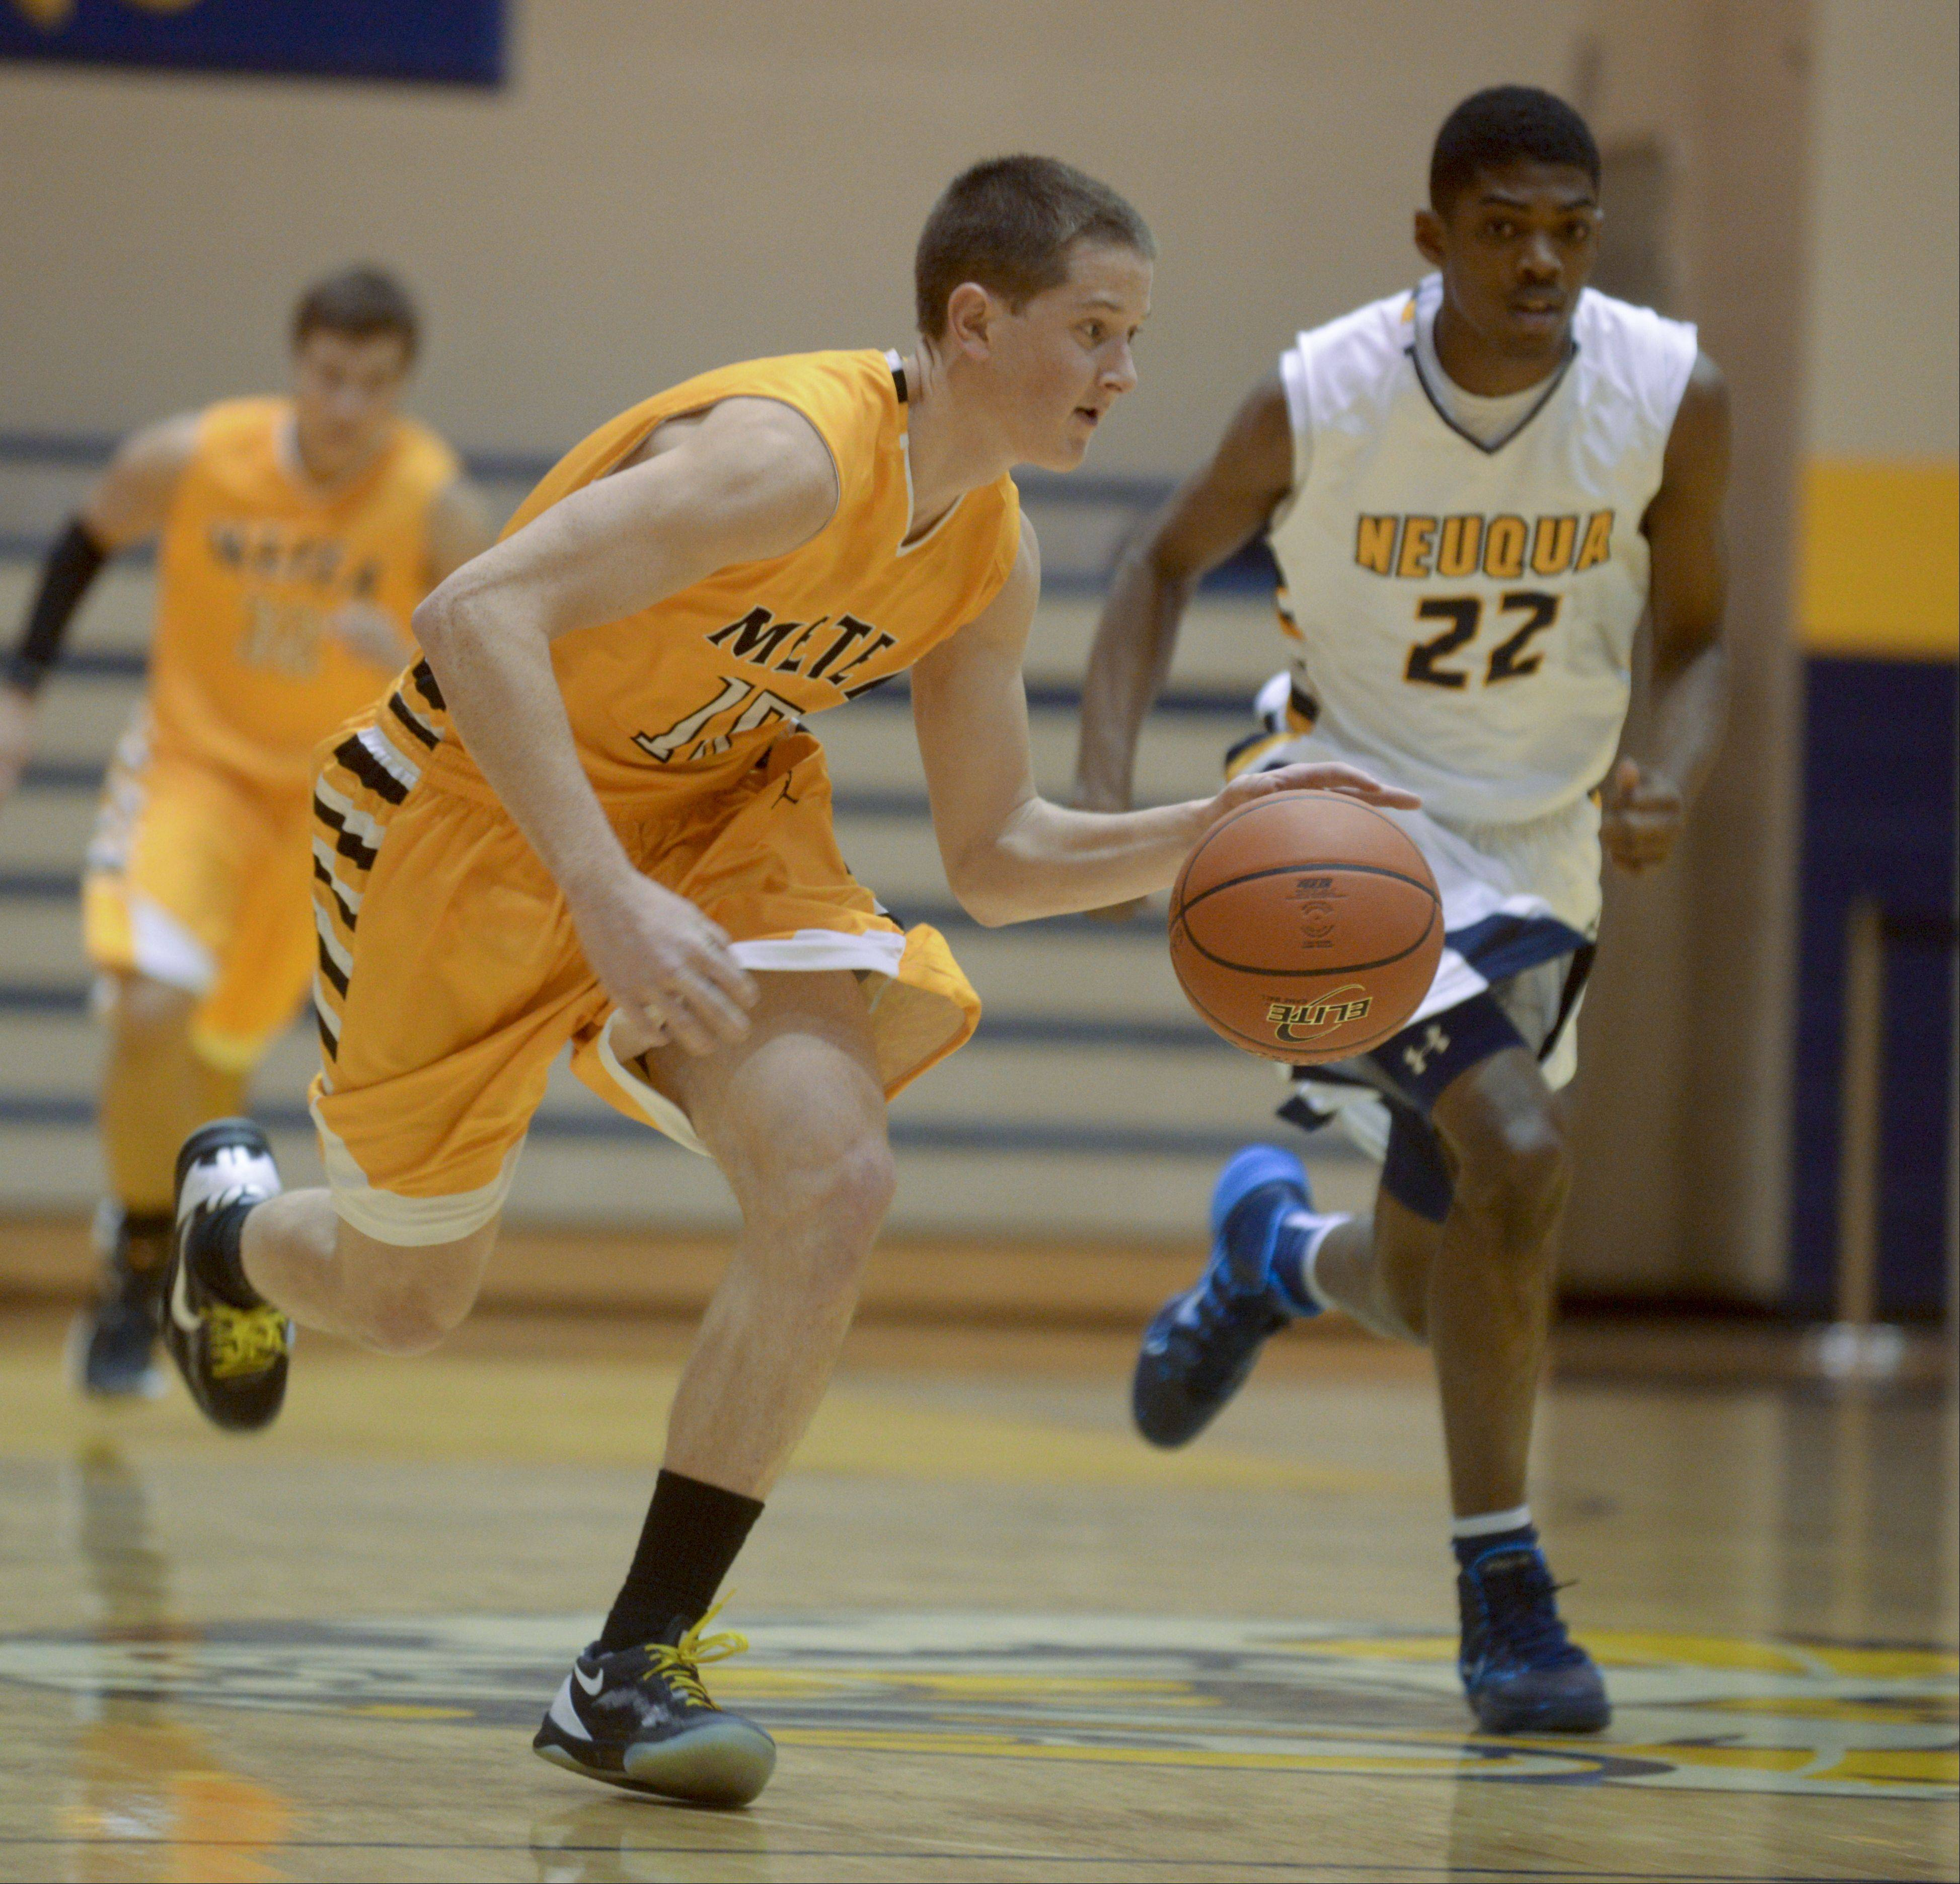 Justin Kuehn of Metea Valley drives with the ball as Elijah Robertson of Neuqua Valley follows close behind.